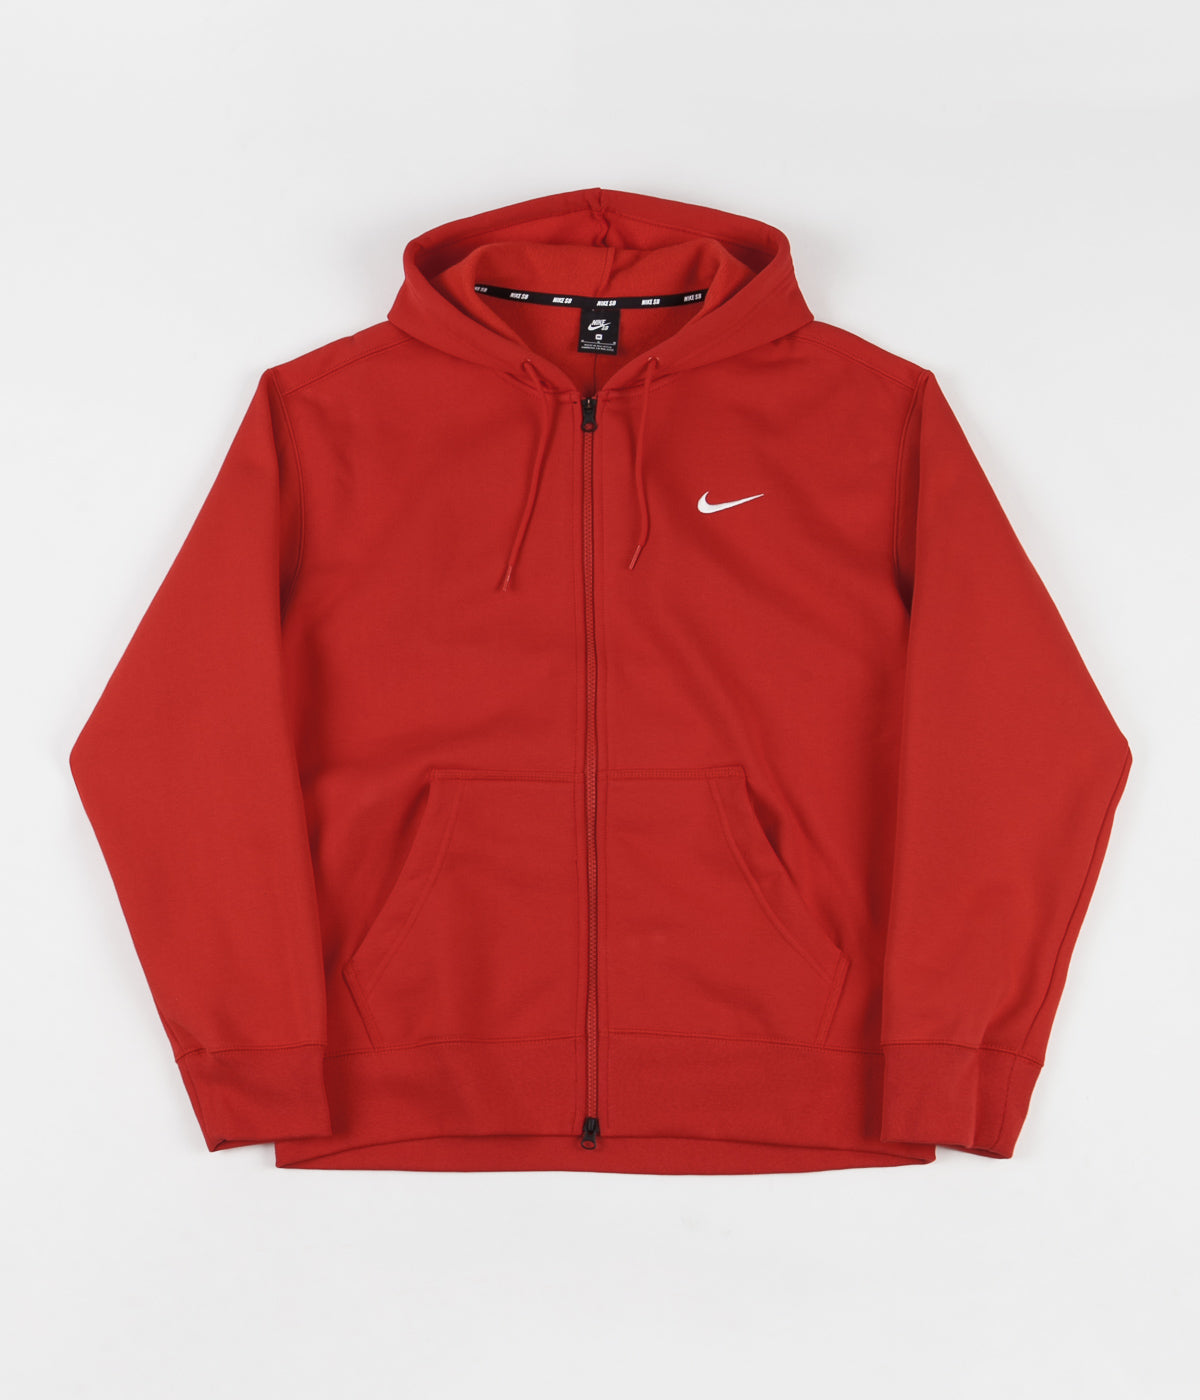 Nike SB Orange Label 'Oski' Hoodie - University Red / Sail